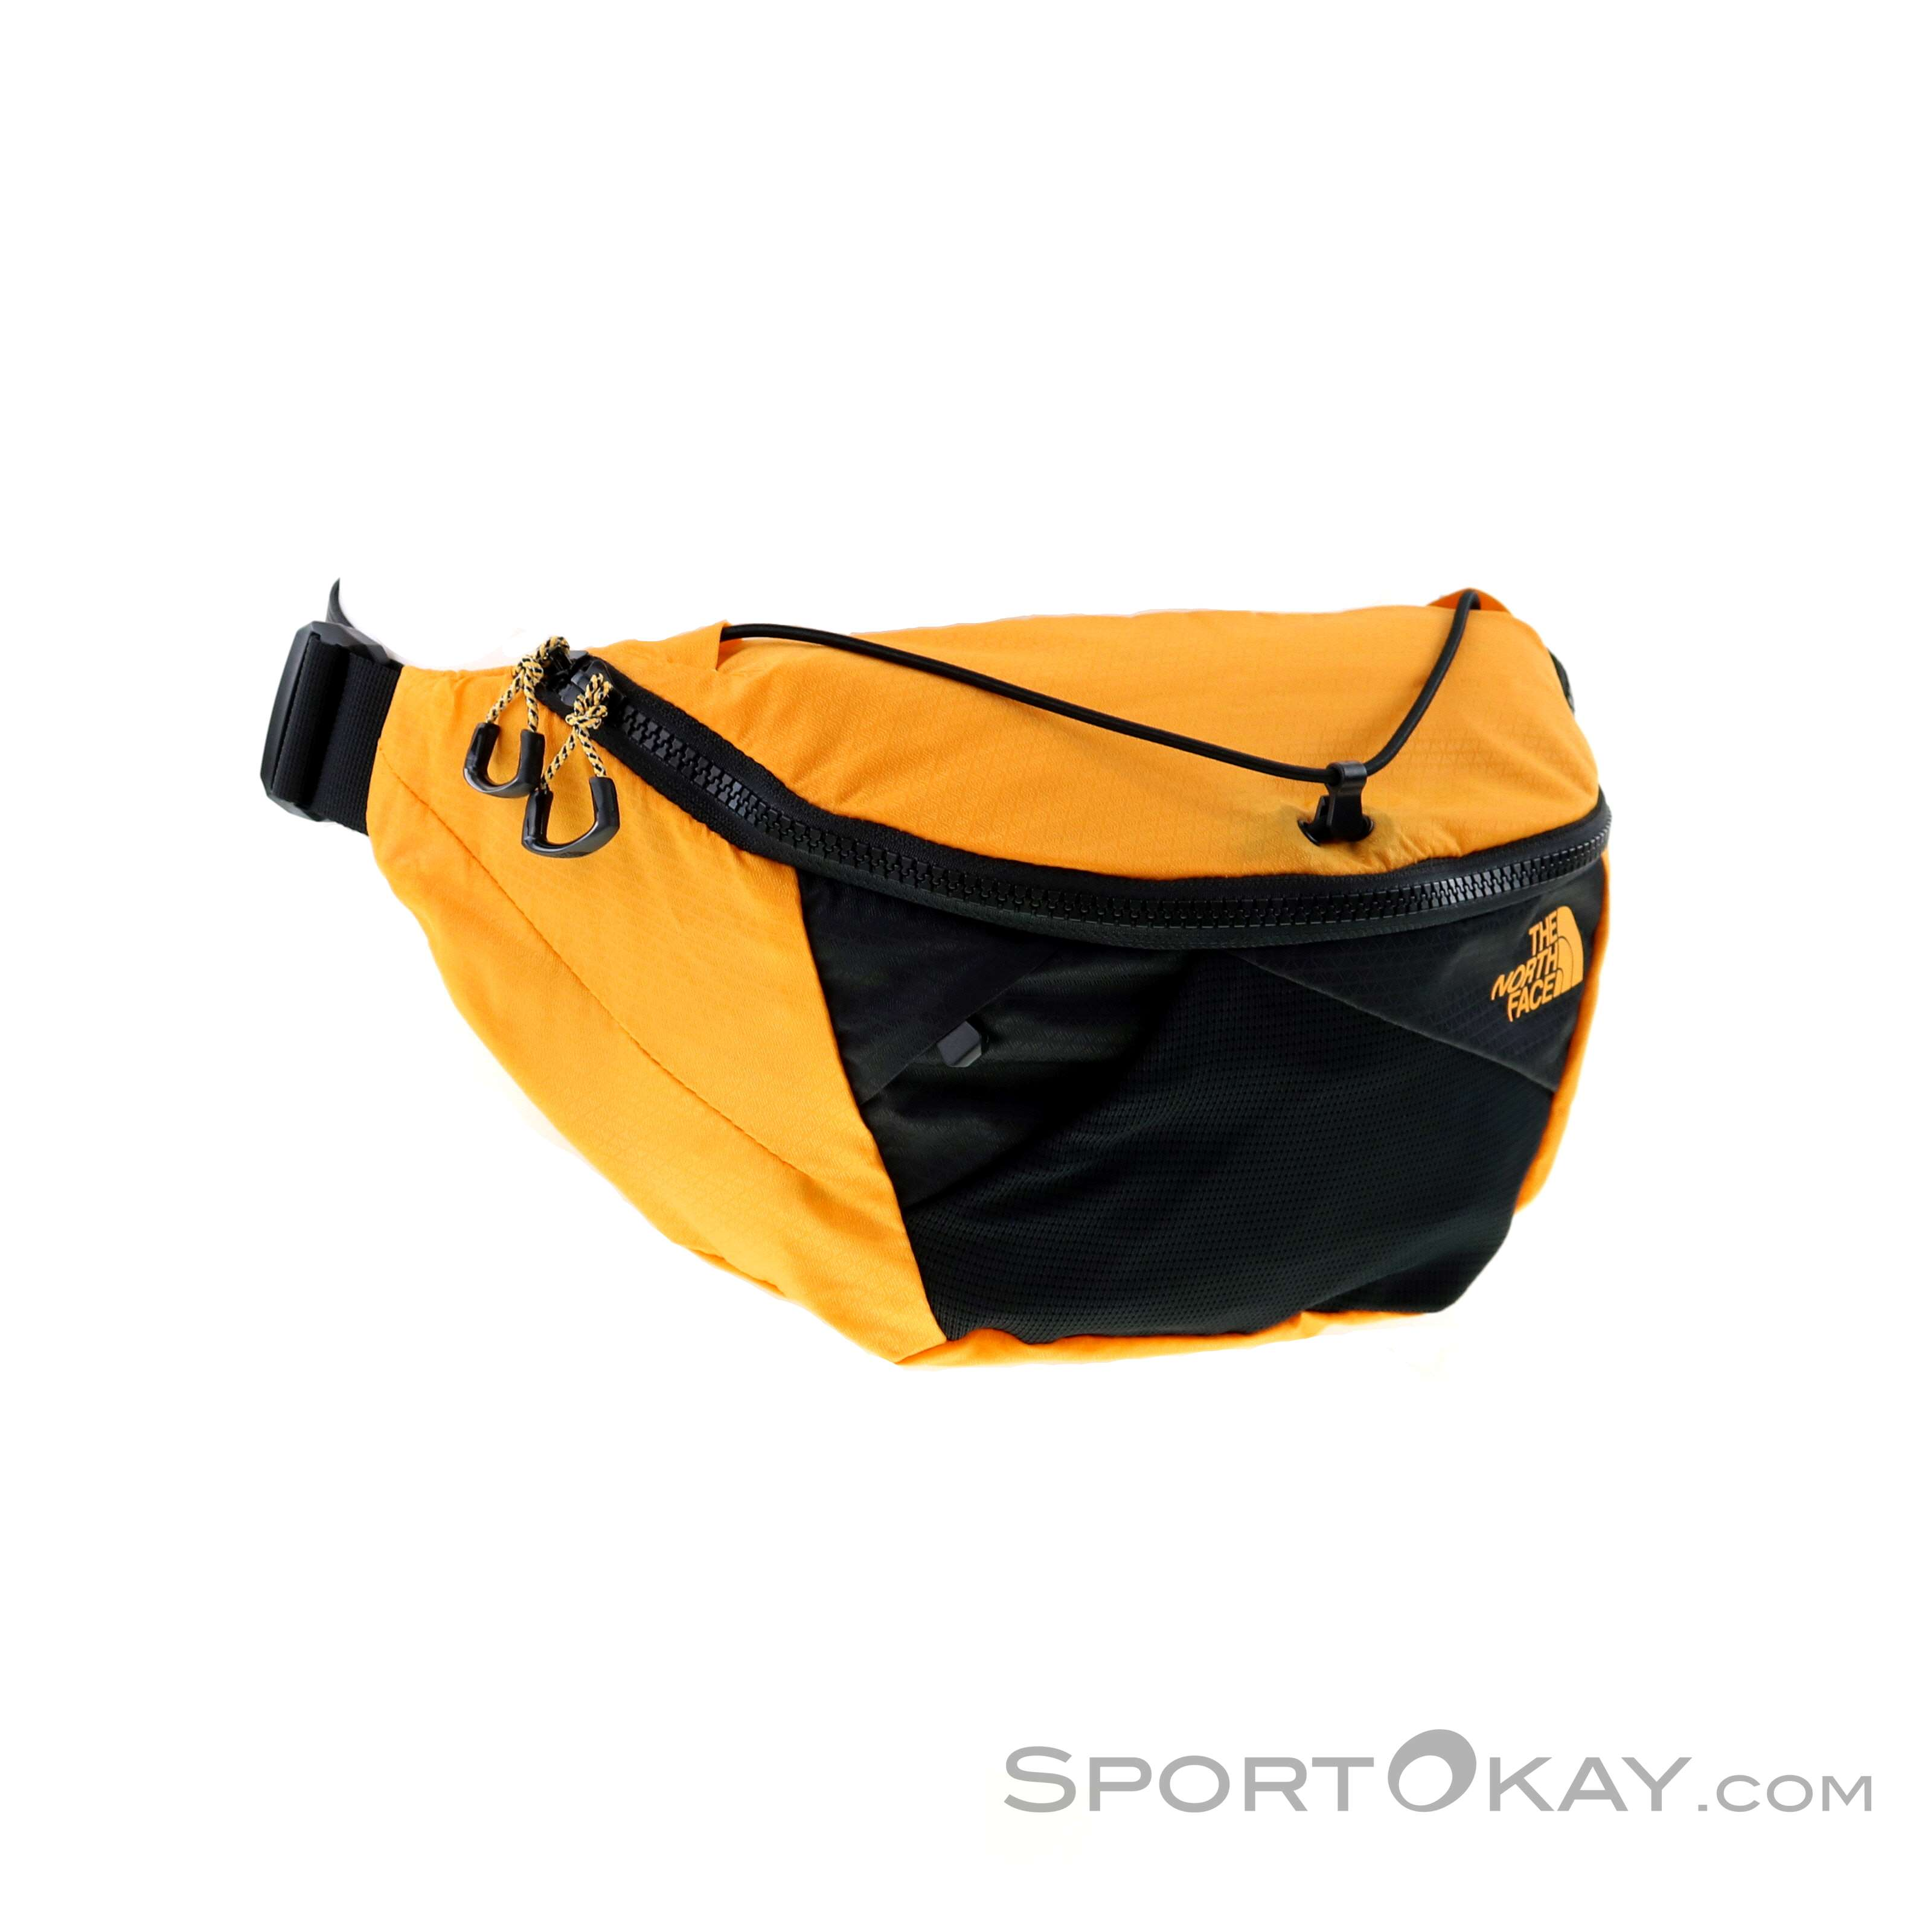 The North Face The North Face Lumbnical S Hip Bag